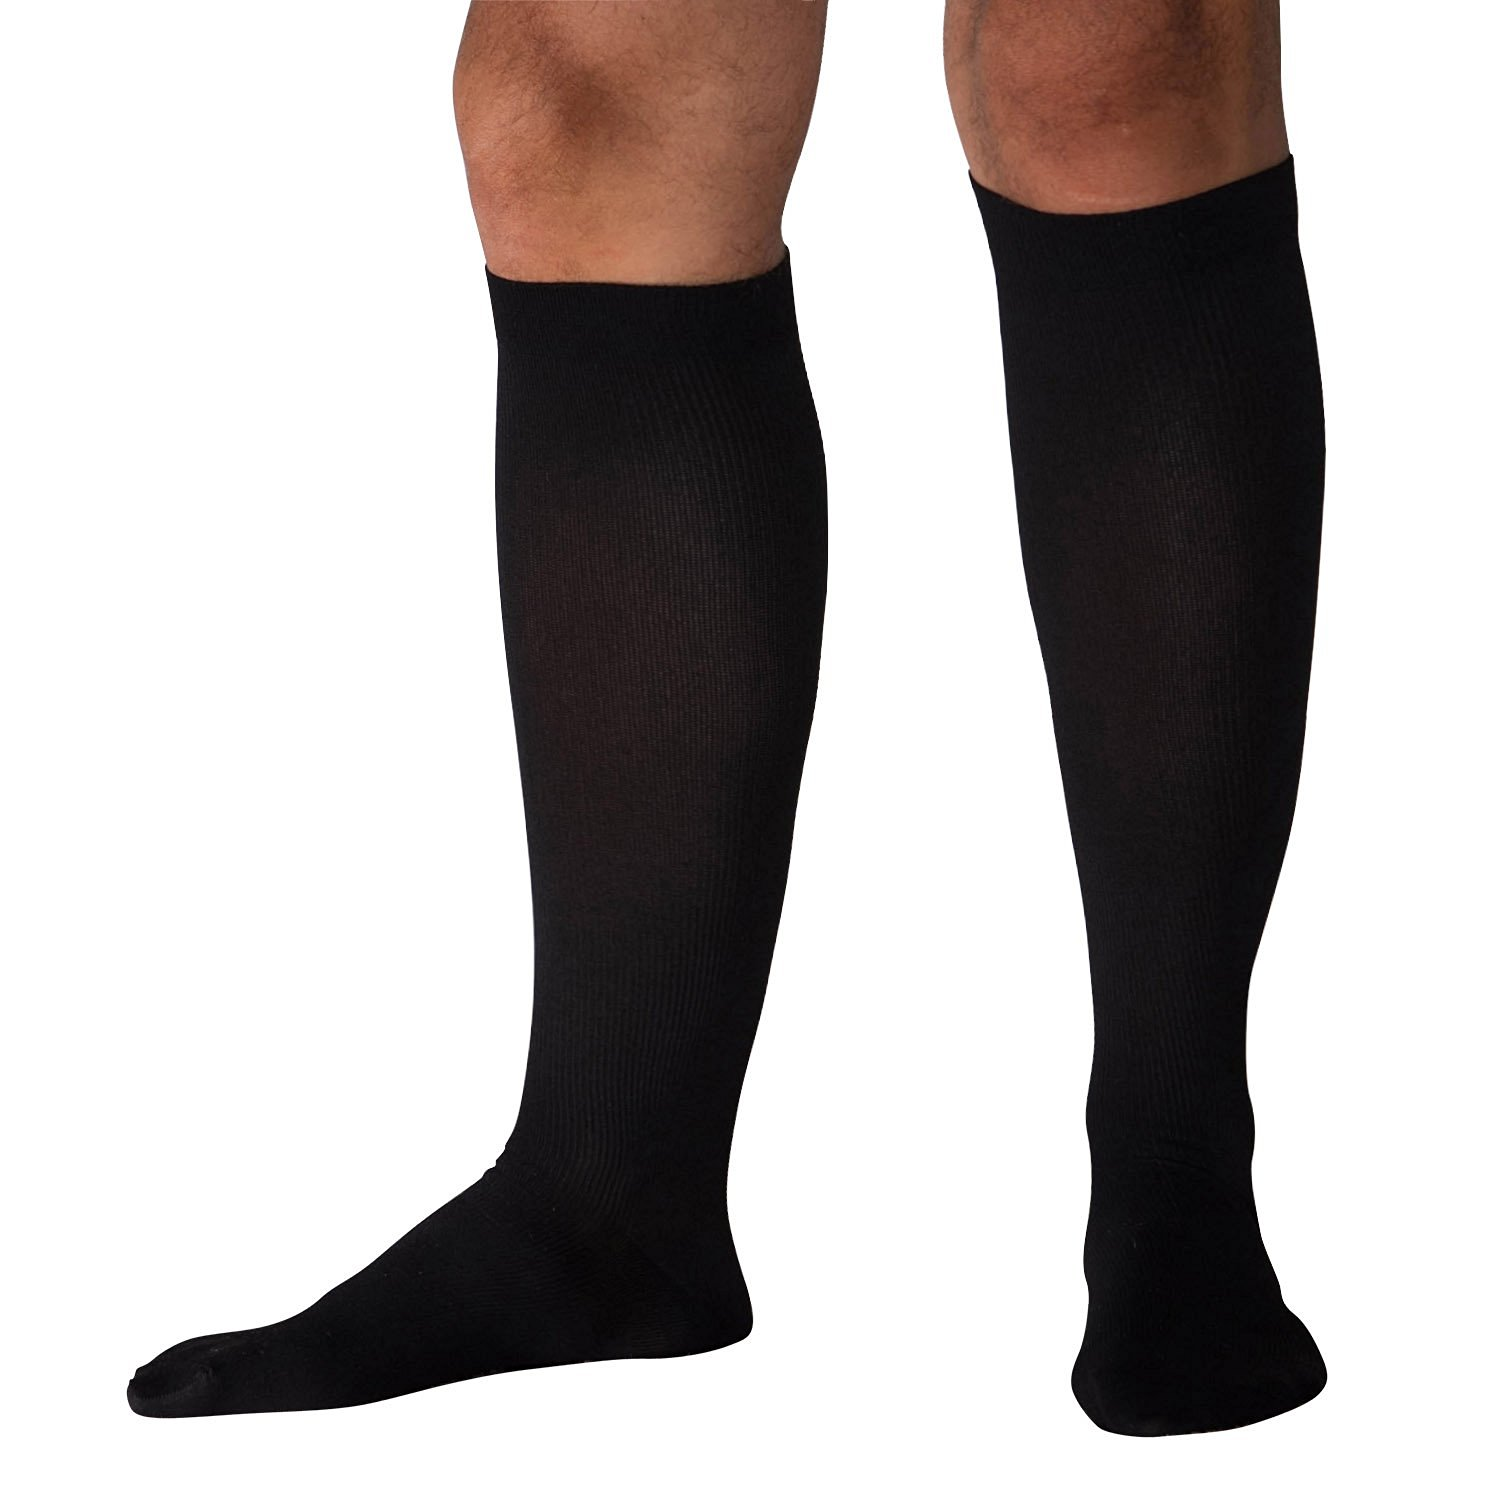 25be34c7680 Get Quotations · Compression Stockings - Dress Compression Socks for Men